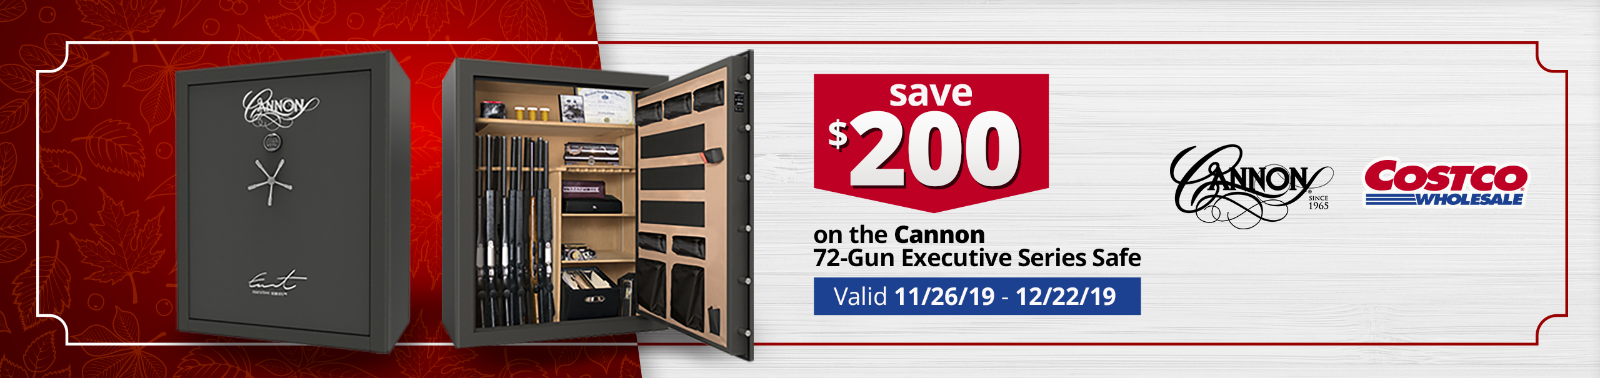 CANNON-HOMEPAGE-HOLIDAY COSTCO